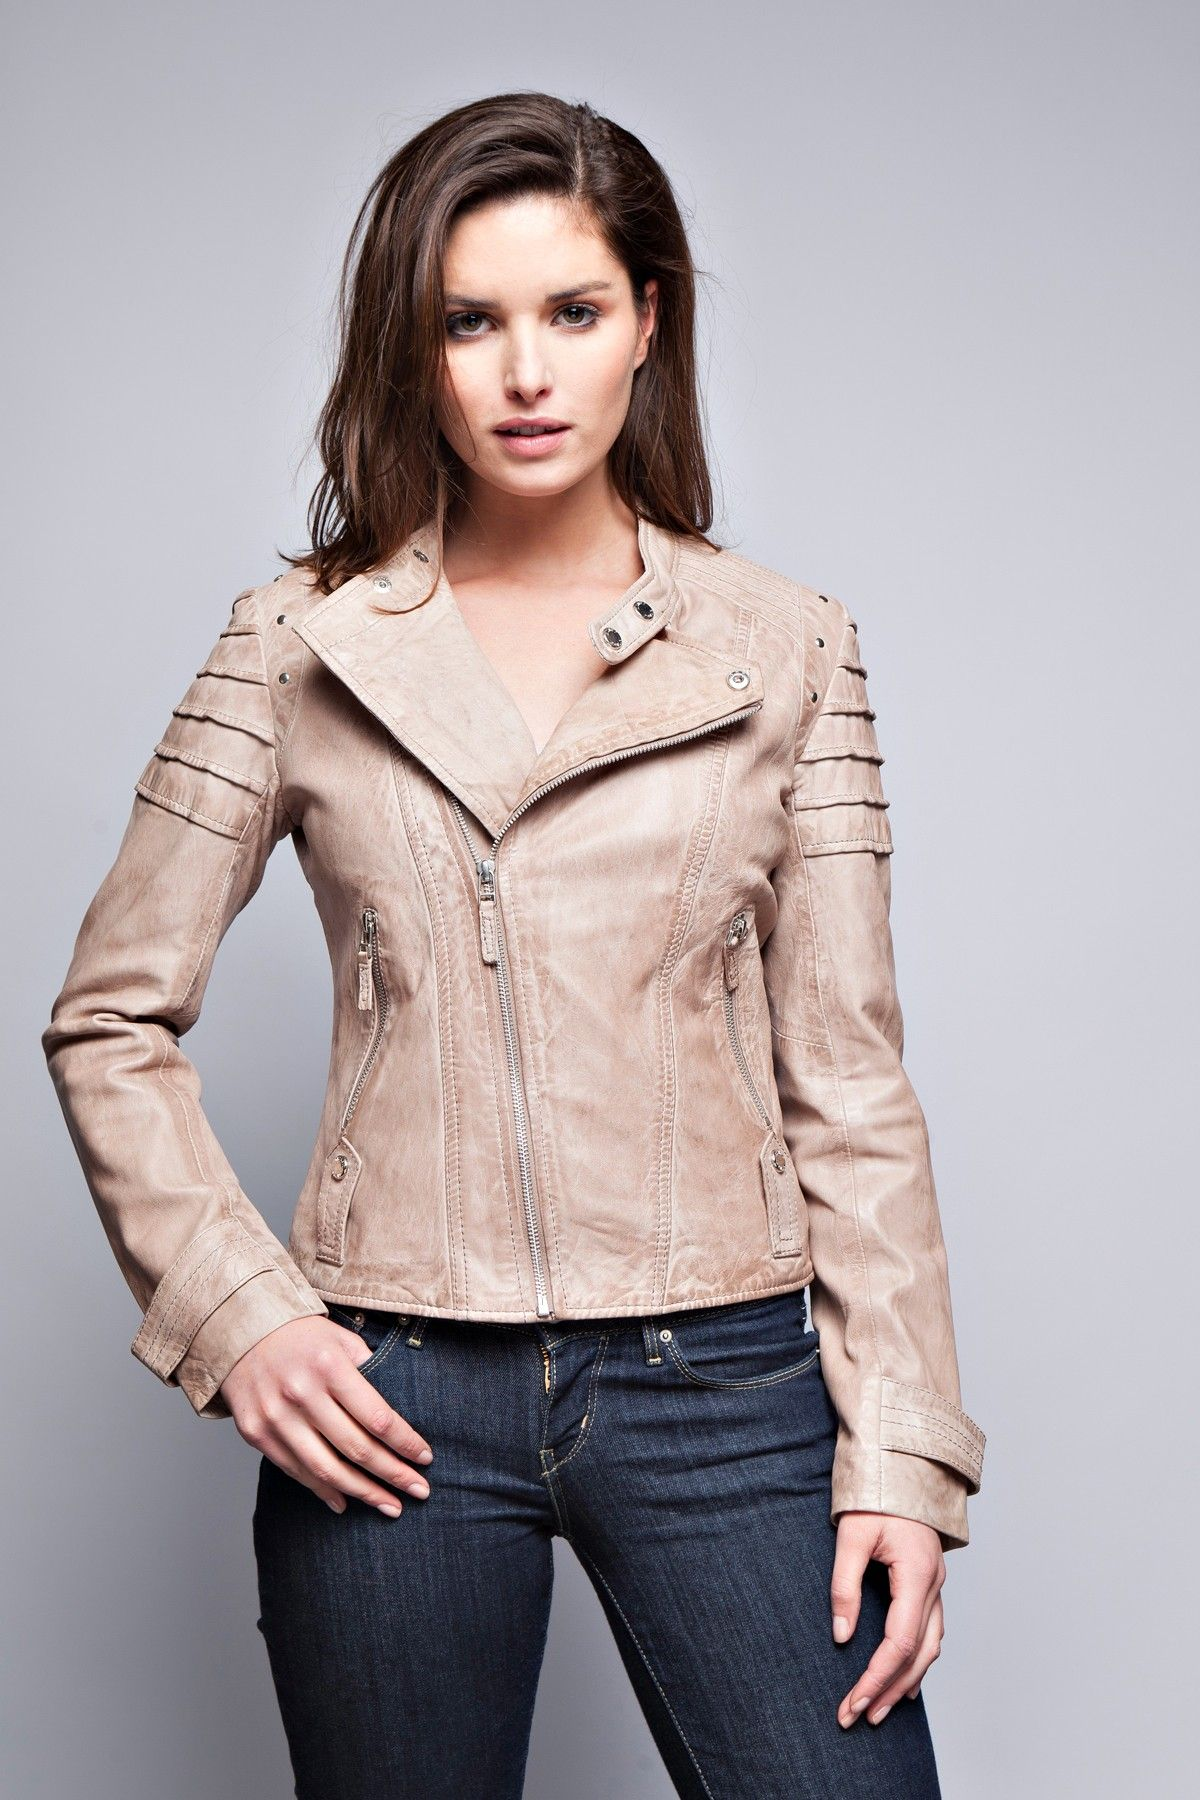 Erreur 404 Leather Jacket Outfit Winter Beige Leather Jacket Beige Leather Jacket Outfit [ 1800 x 1200 Pixel ]